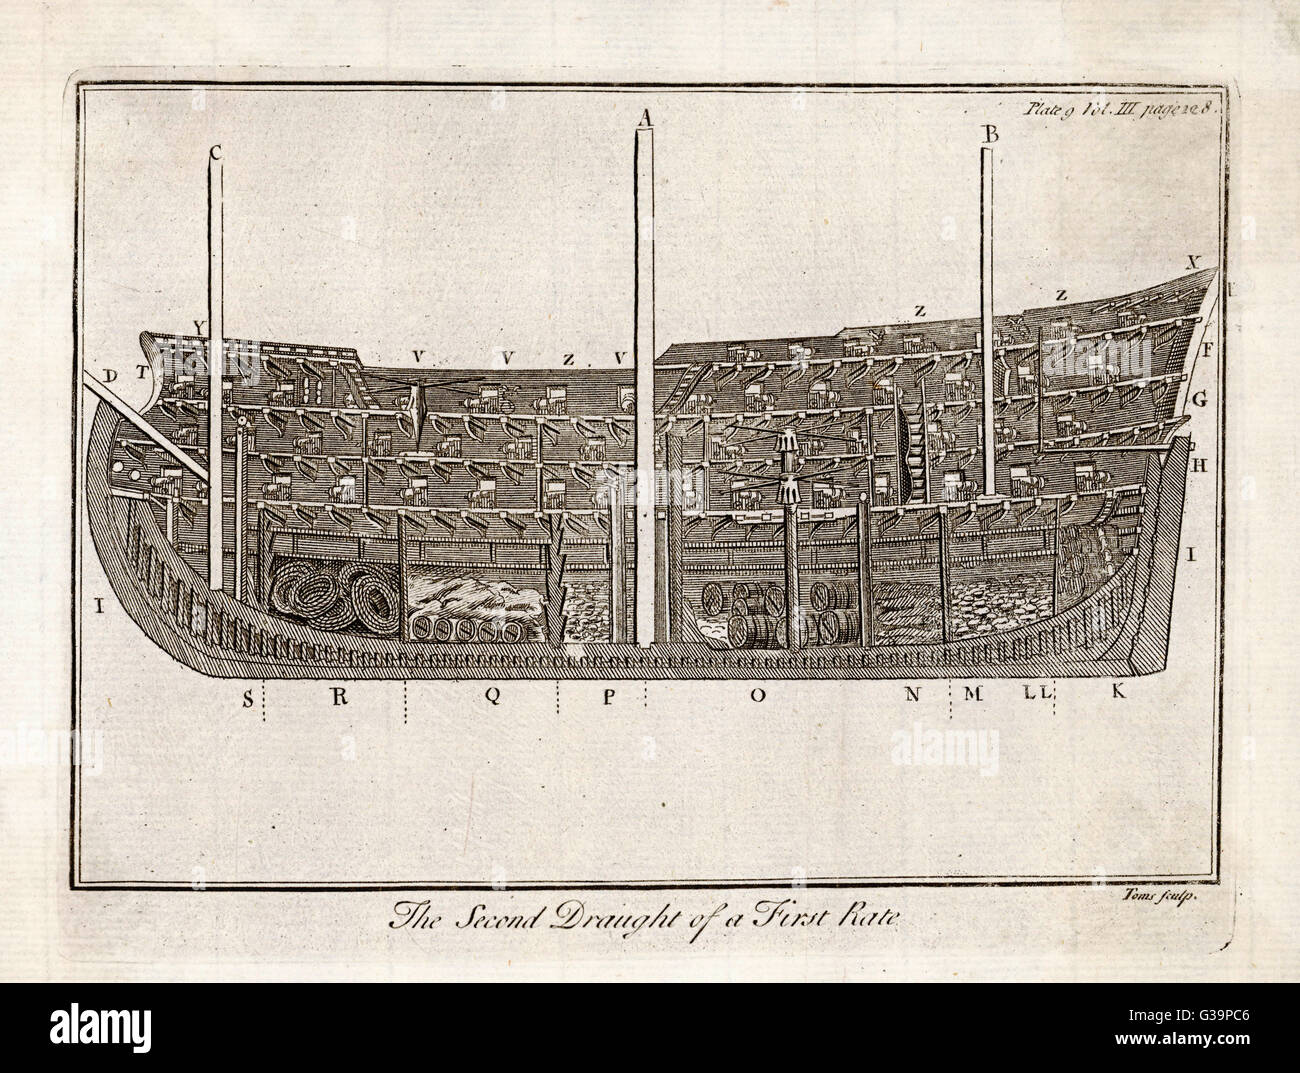 Cross-section of a first-rate  warship         Date: circa 1730 - Stock Image